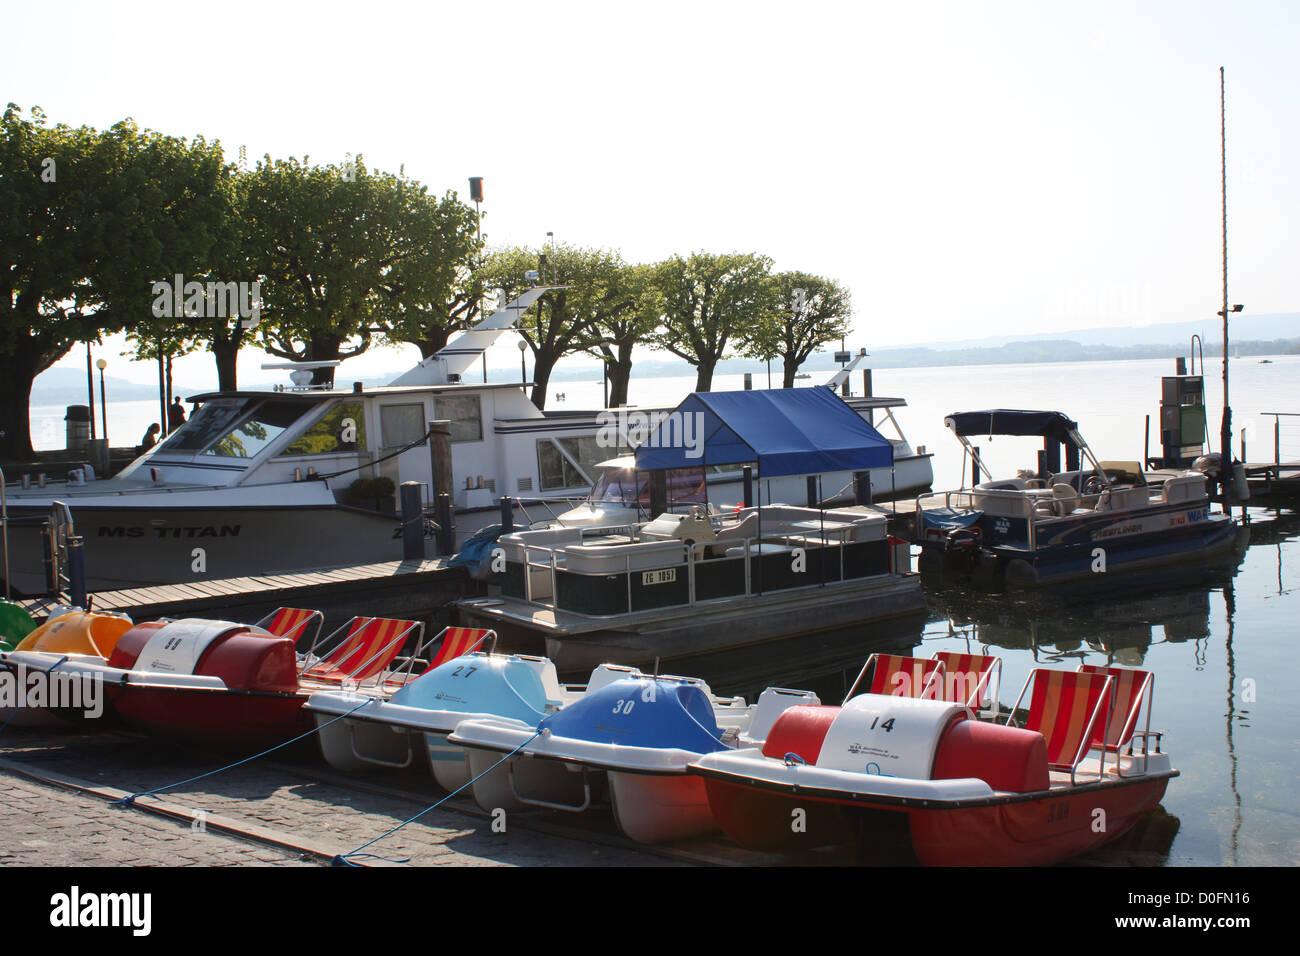 Boats with lake view in Zug, Switzerland Stock Photo